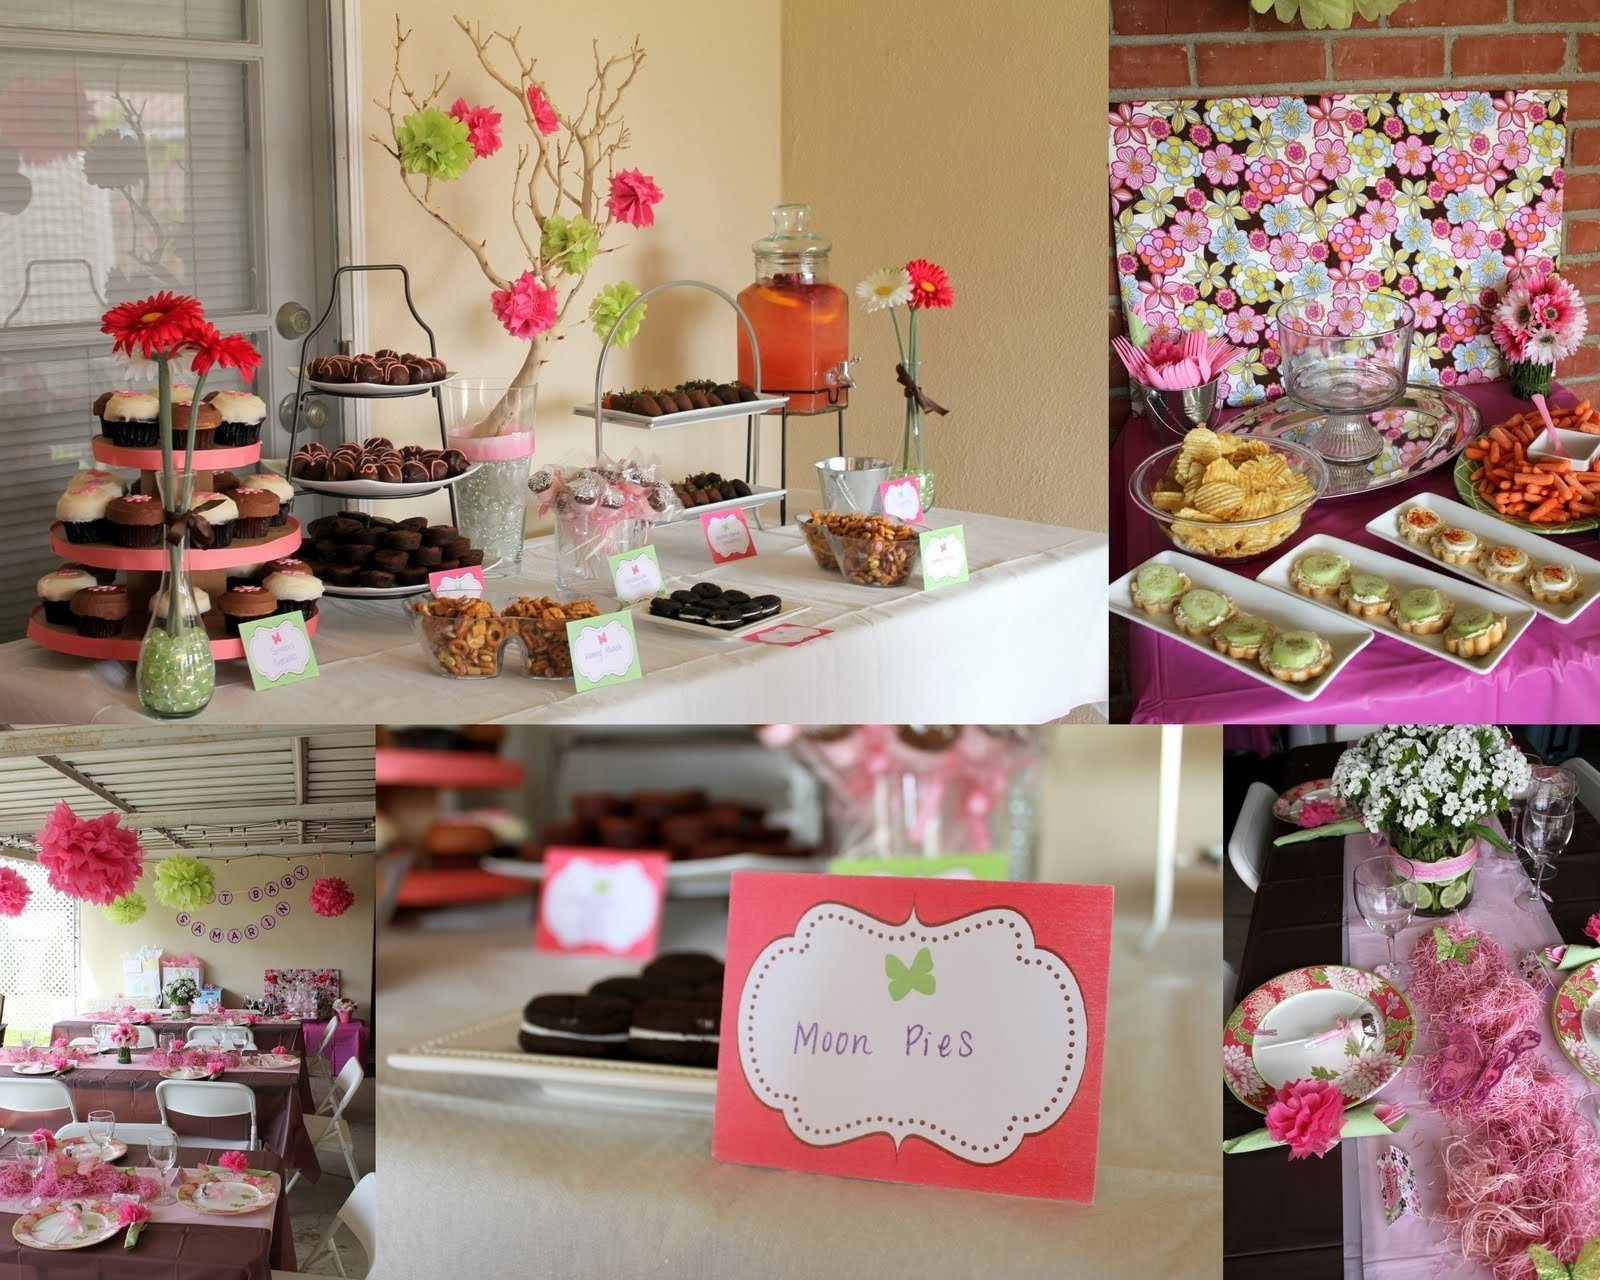 10 Trendy Pink And Brown Baby Shower Ideas pink and brown baby shower decorations baby showers ideas